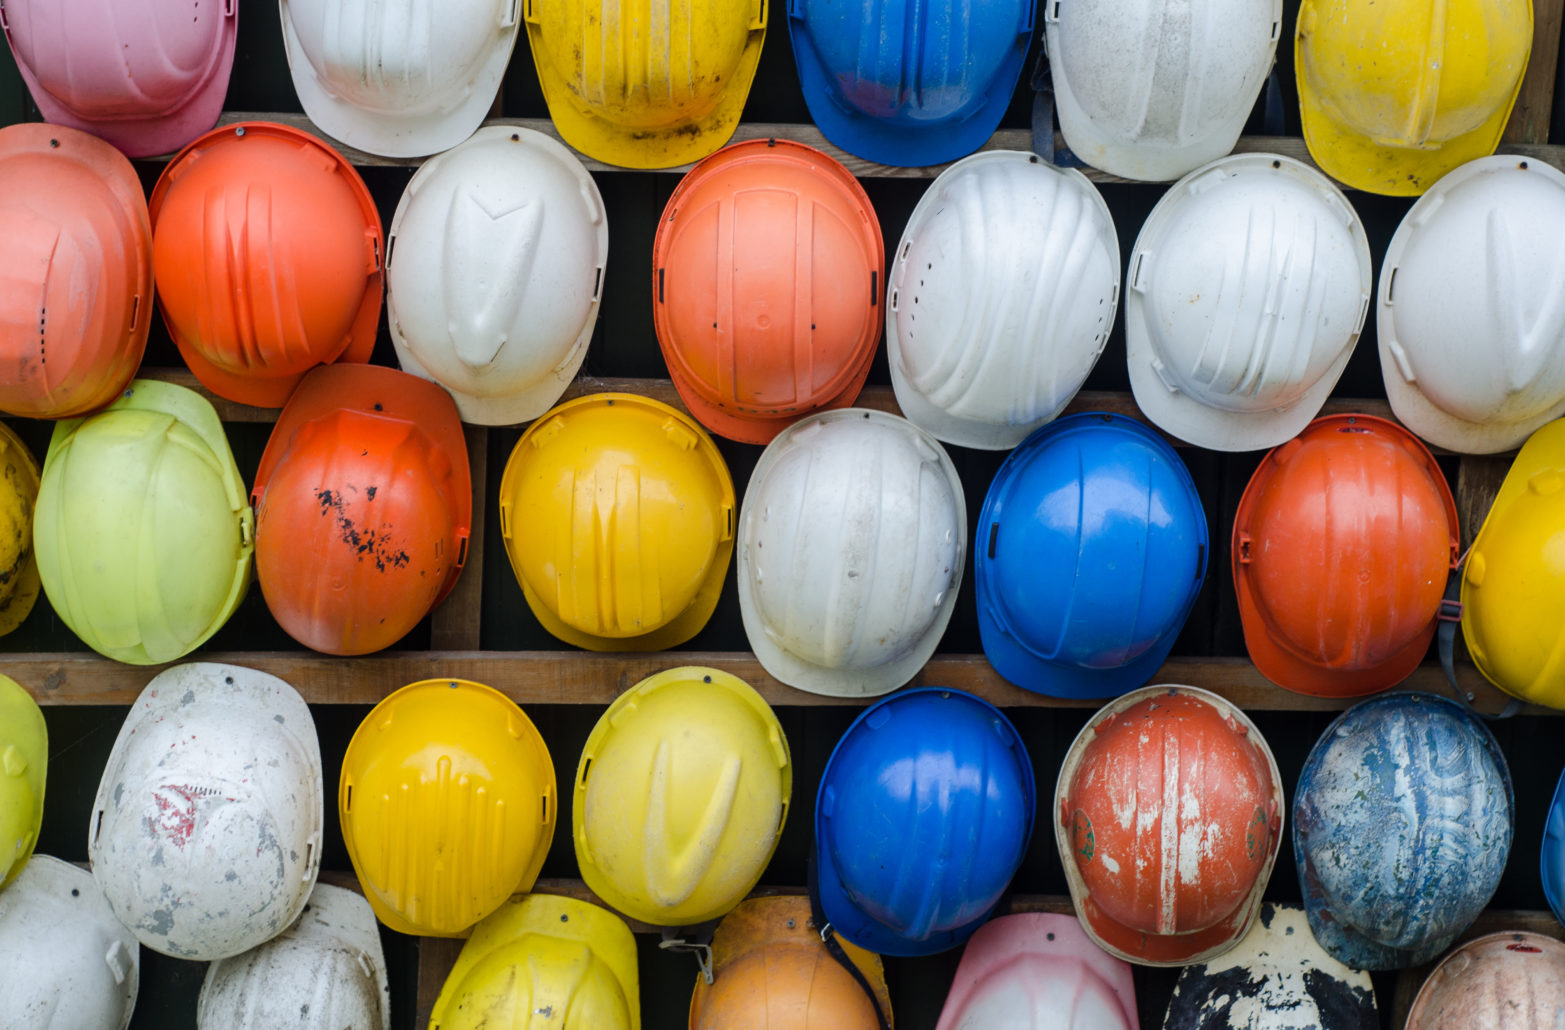 Rows of different coloured hard hats